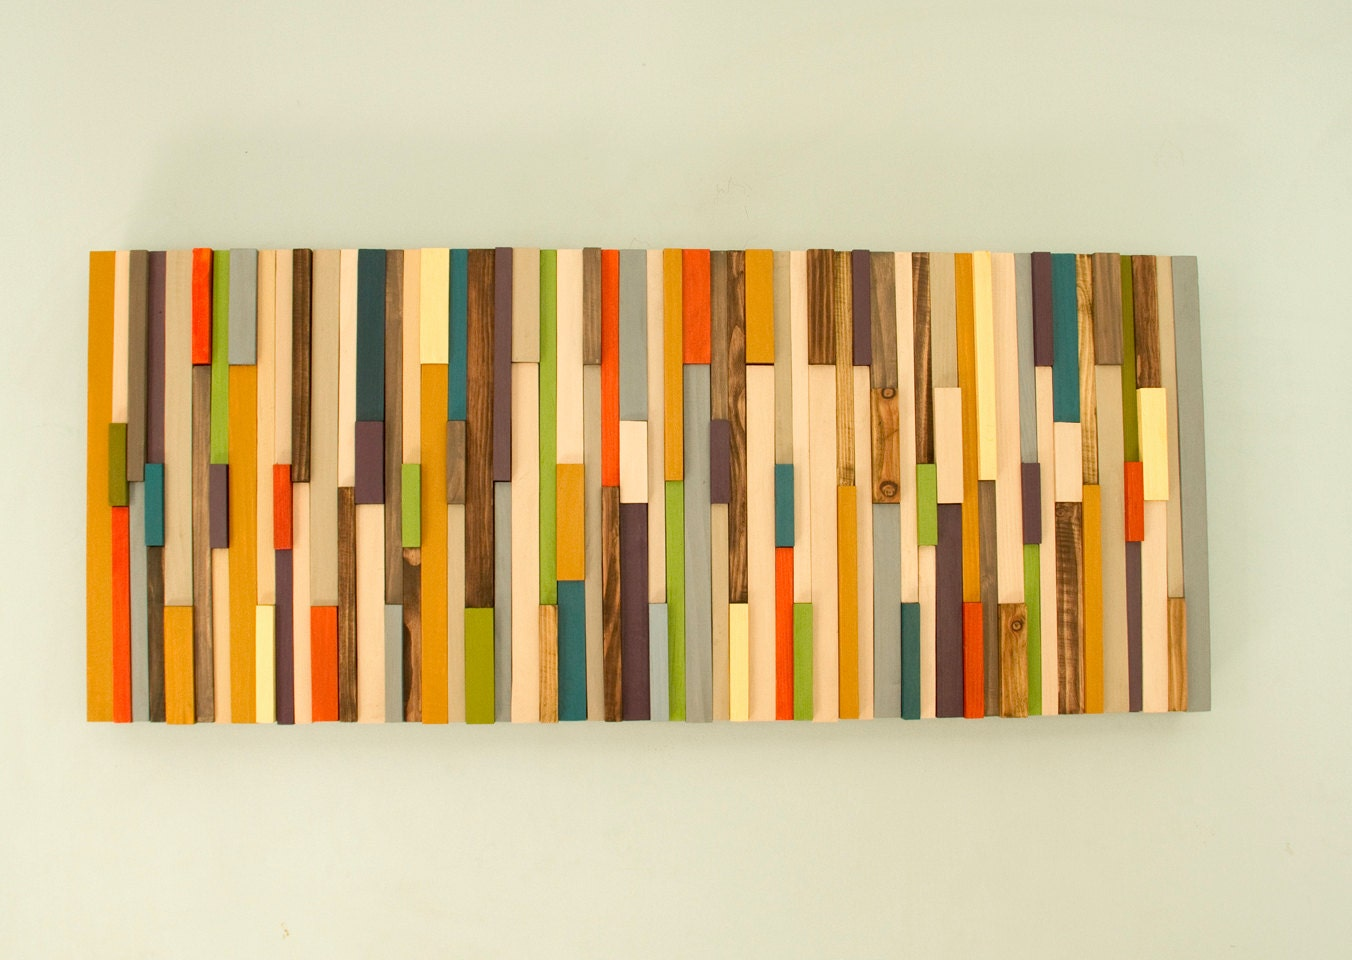 Mid century wall art reclaimed wood art sculpture sale Reclaimed wood wall art for sale